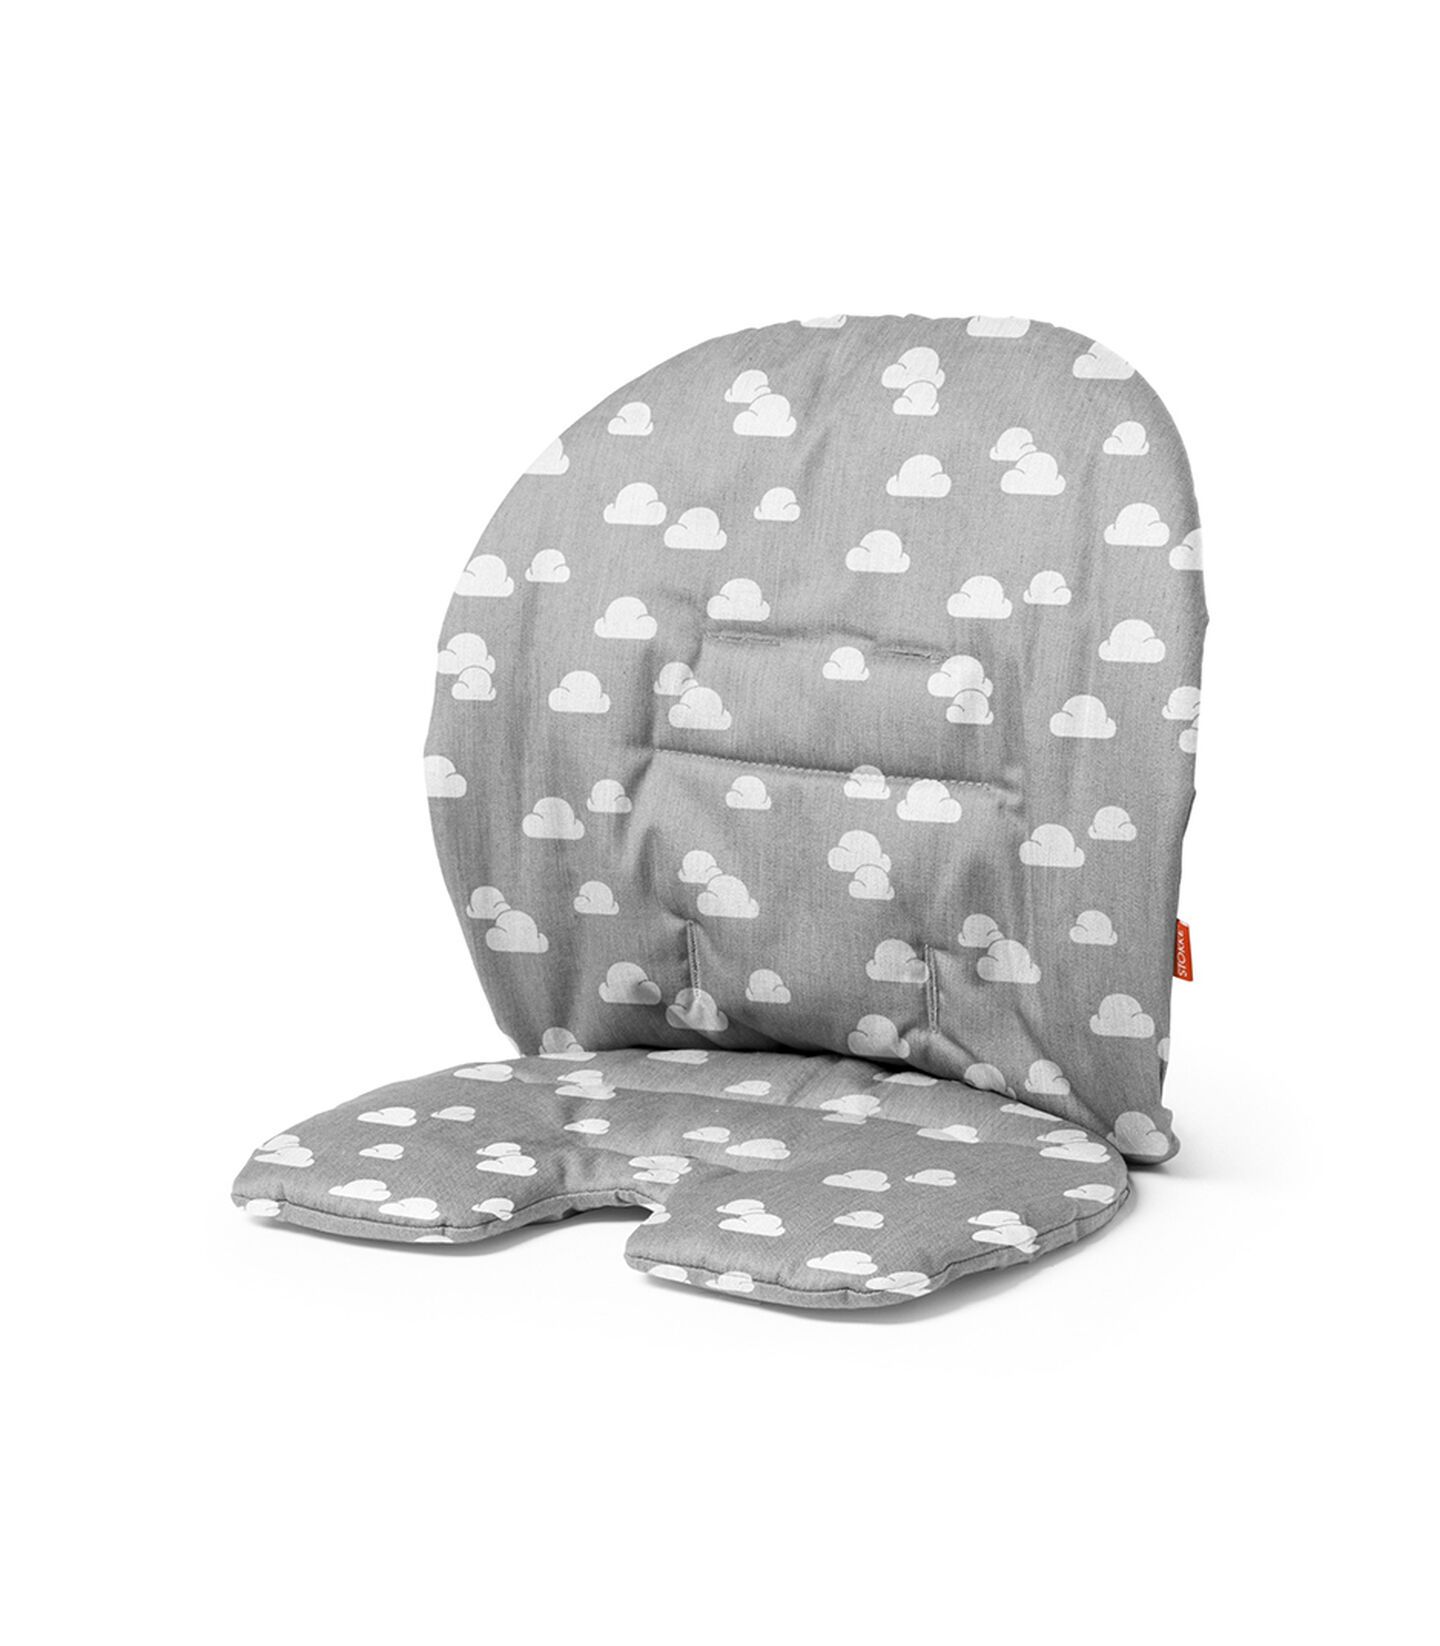 Stokke® Steps™ Baby Set Pude Grey Clouds, Grey Clouds, mainview view 2